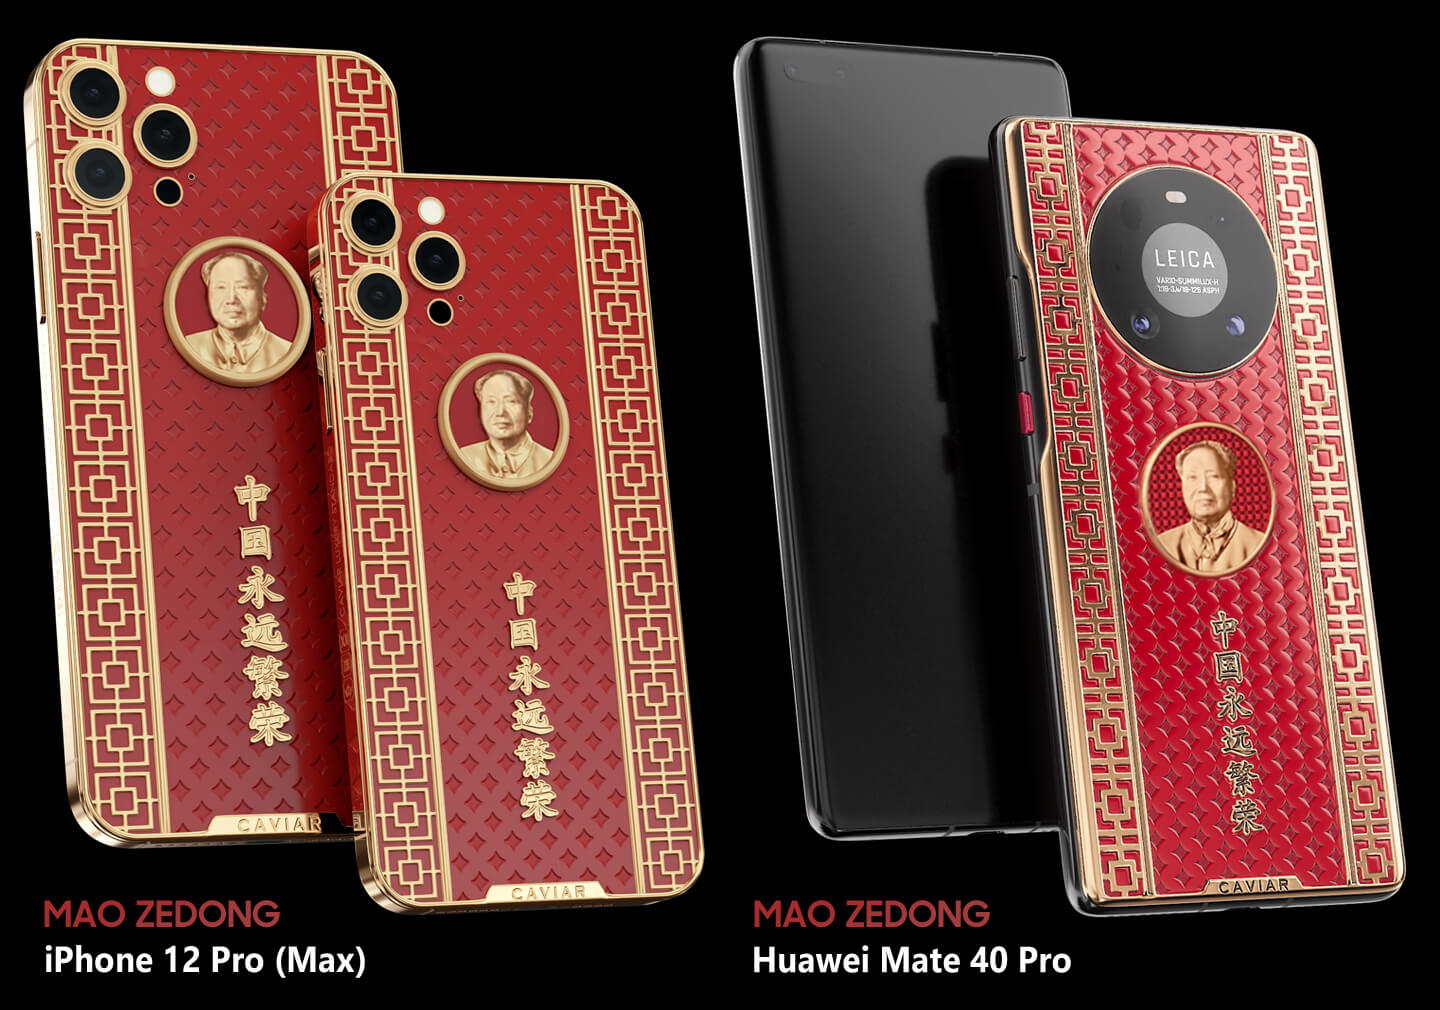 Huawei Mate 40 Pro Limited Edition